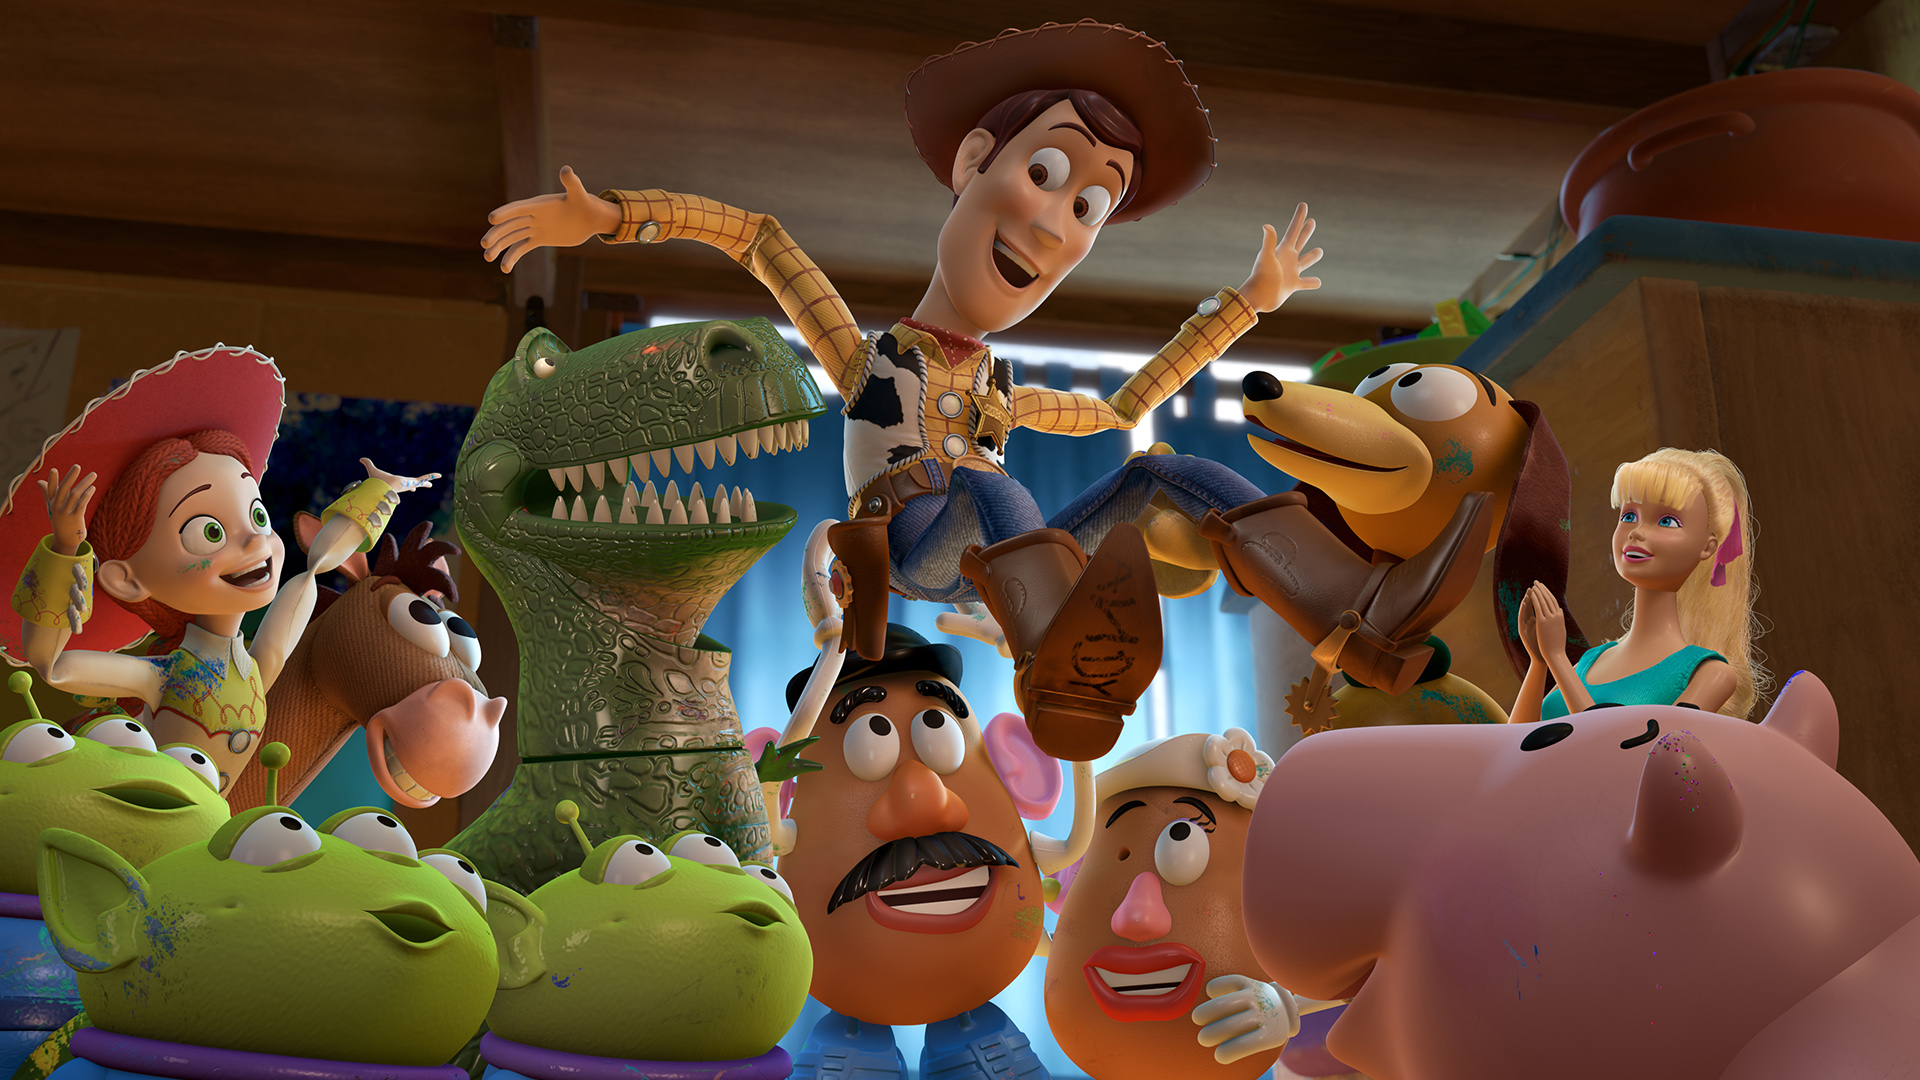 Toy Story 3 HD Wallpaper | Background Image | 1920x1080 | ID:782369 - Wallpaper Abyss